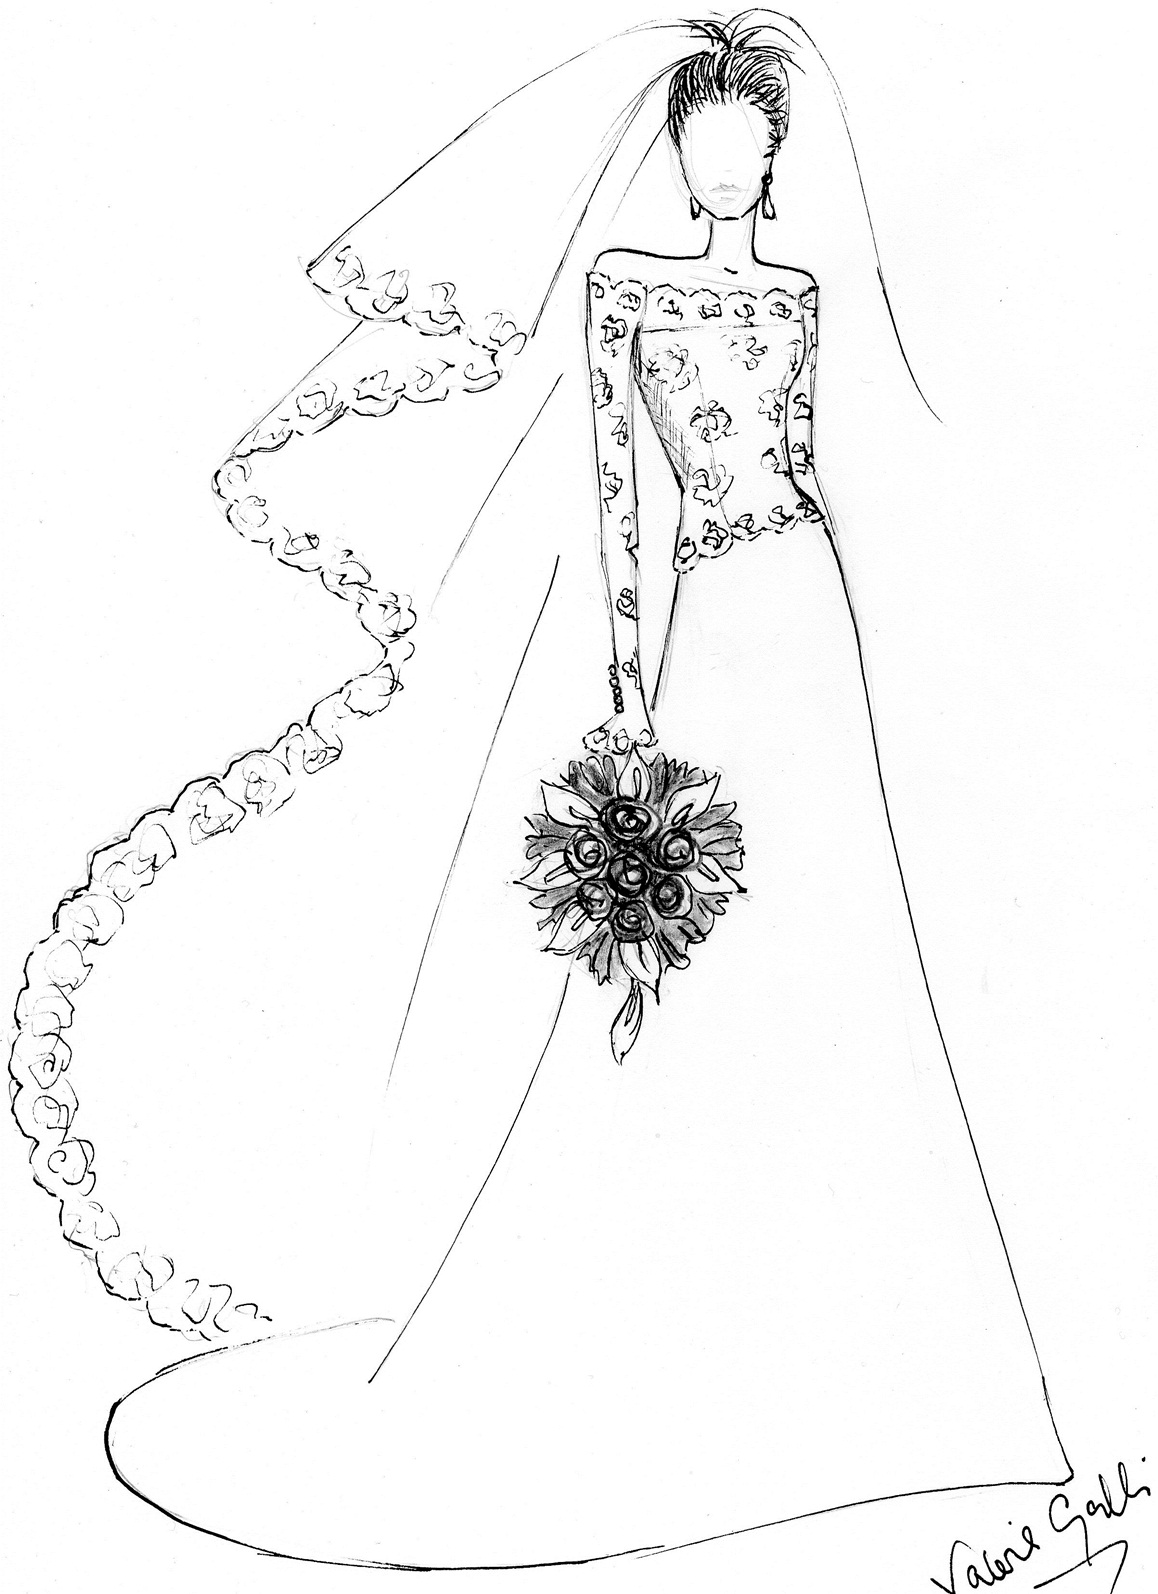 wedding dresses coloring pages girl in dress drawing at getdrawings free download coloring pages wedding dresses